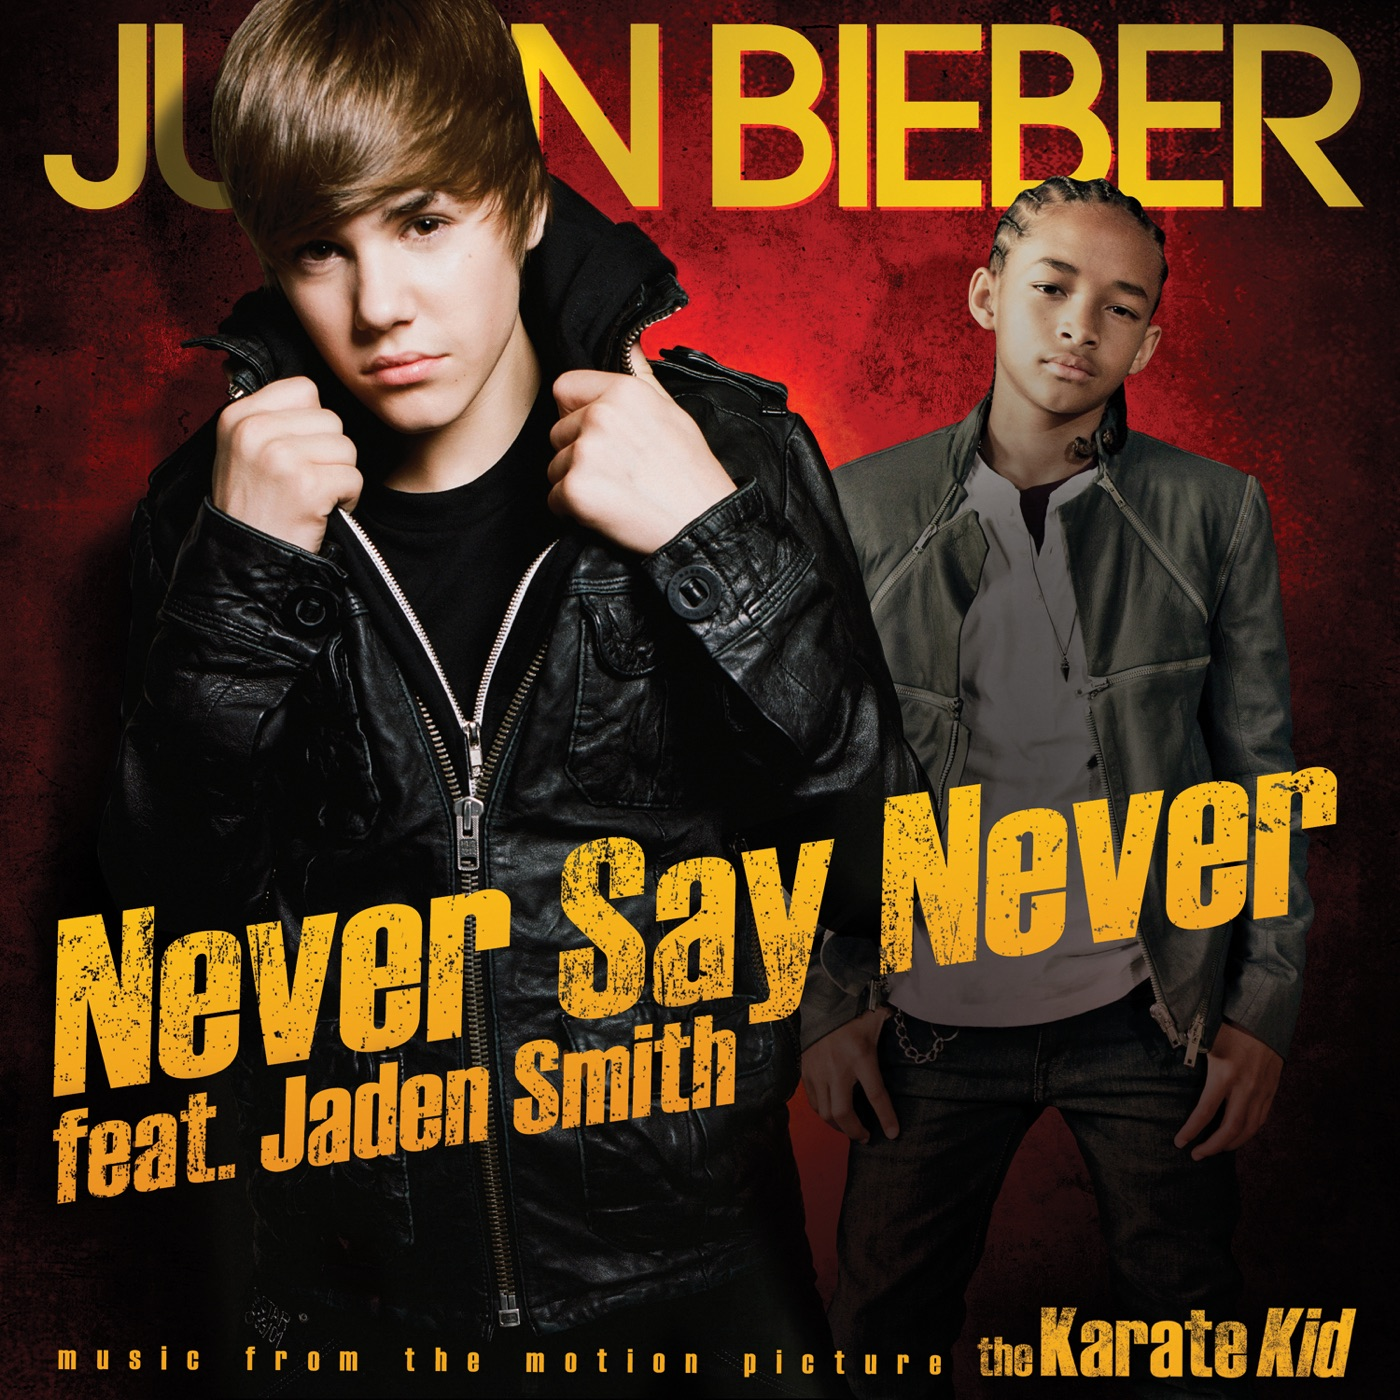 Justin Bieber - Never Say Never (feat. Jaden Smith) - Single Cover